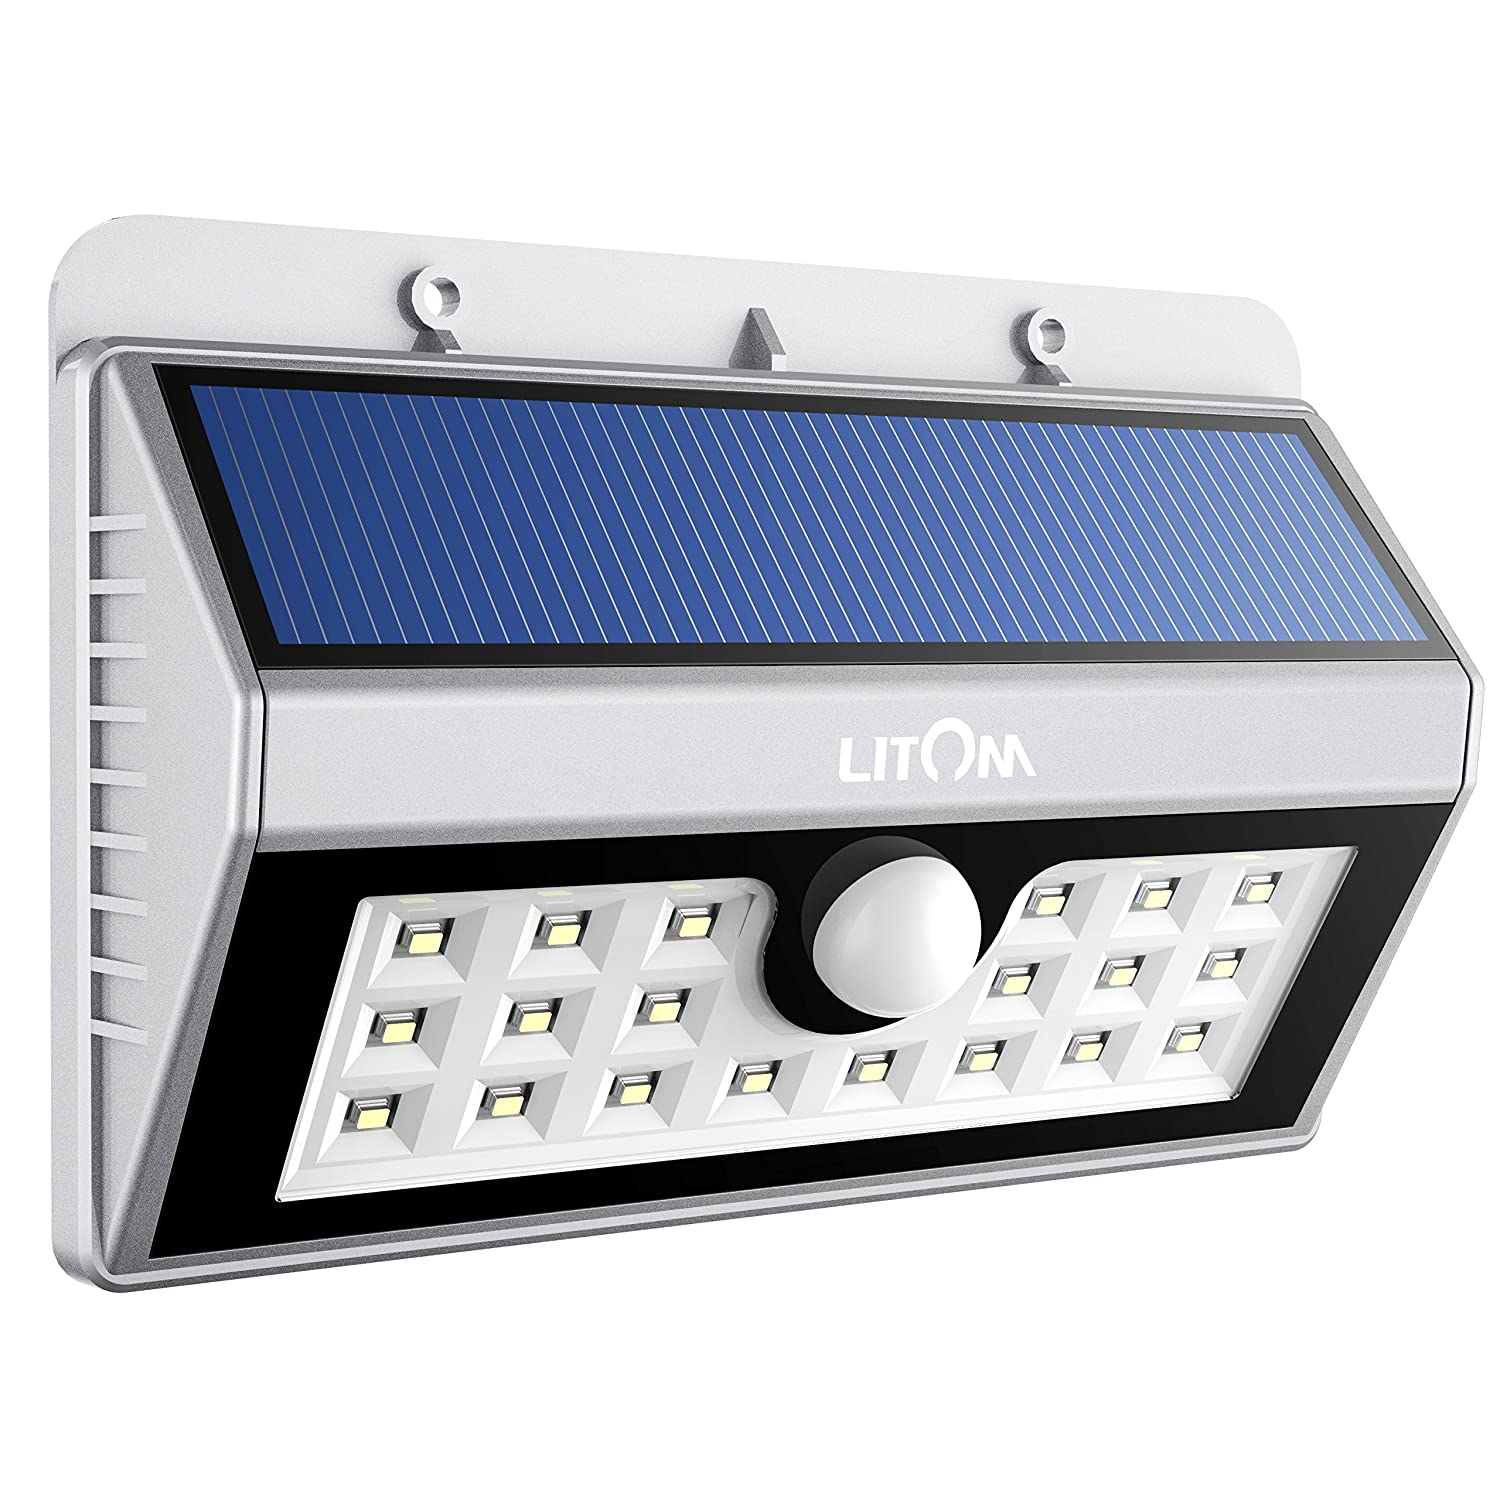 Litom solar lights outdoor wireless 24 led motion sensor solar litom lsl7s 20 big led solar sensor powered wall lights weatherproof for outdoorsilver mozeypictures Choice Image